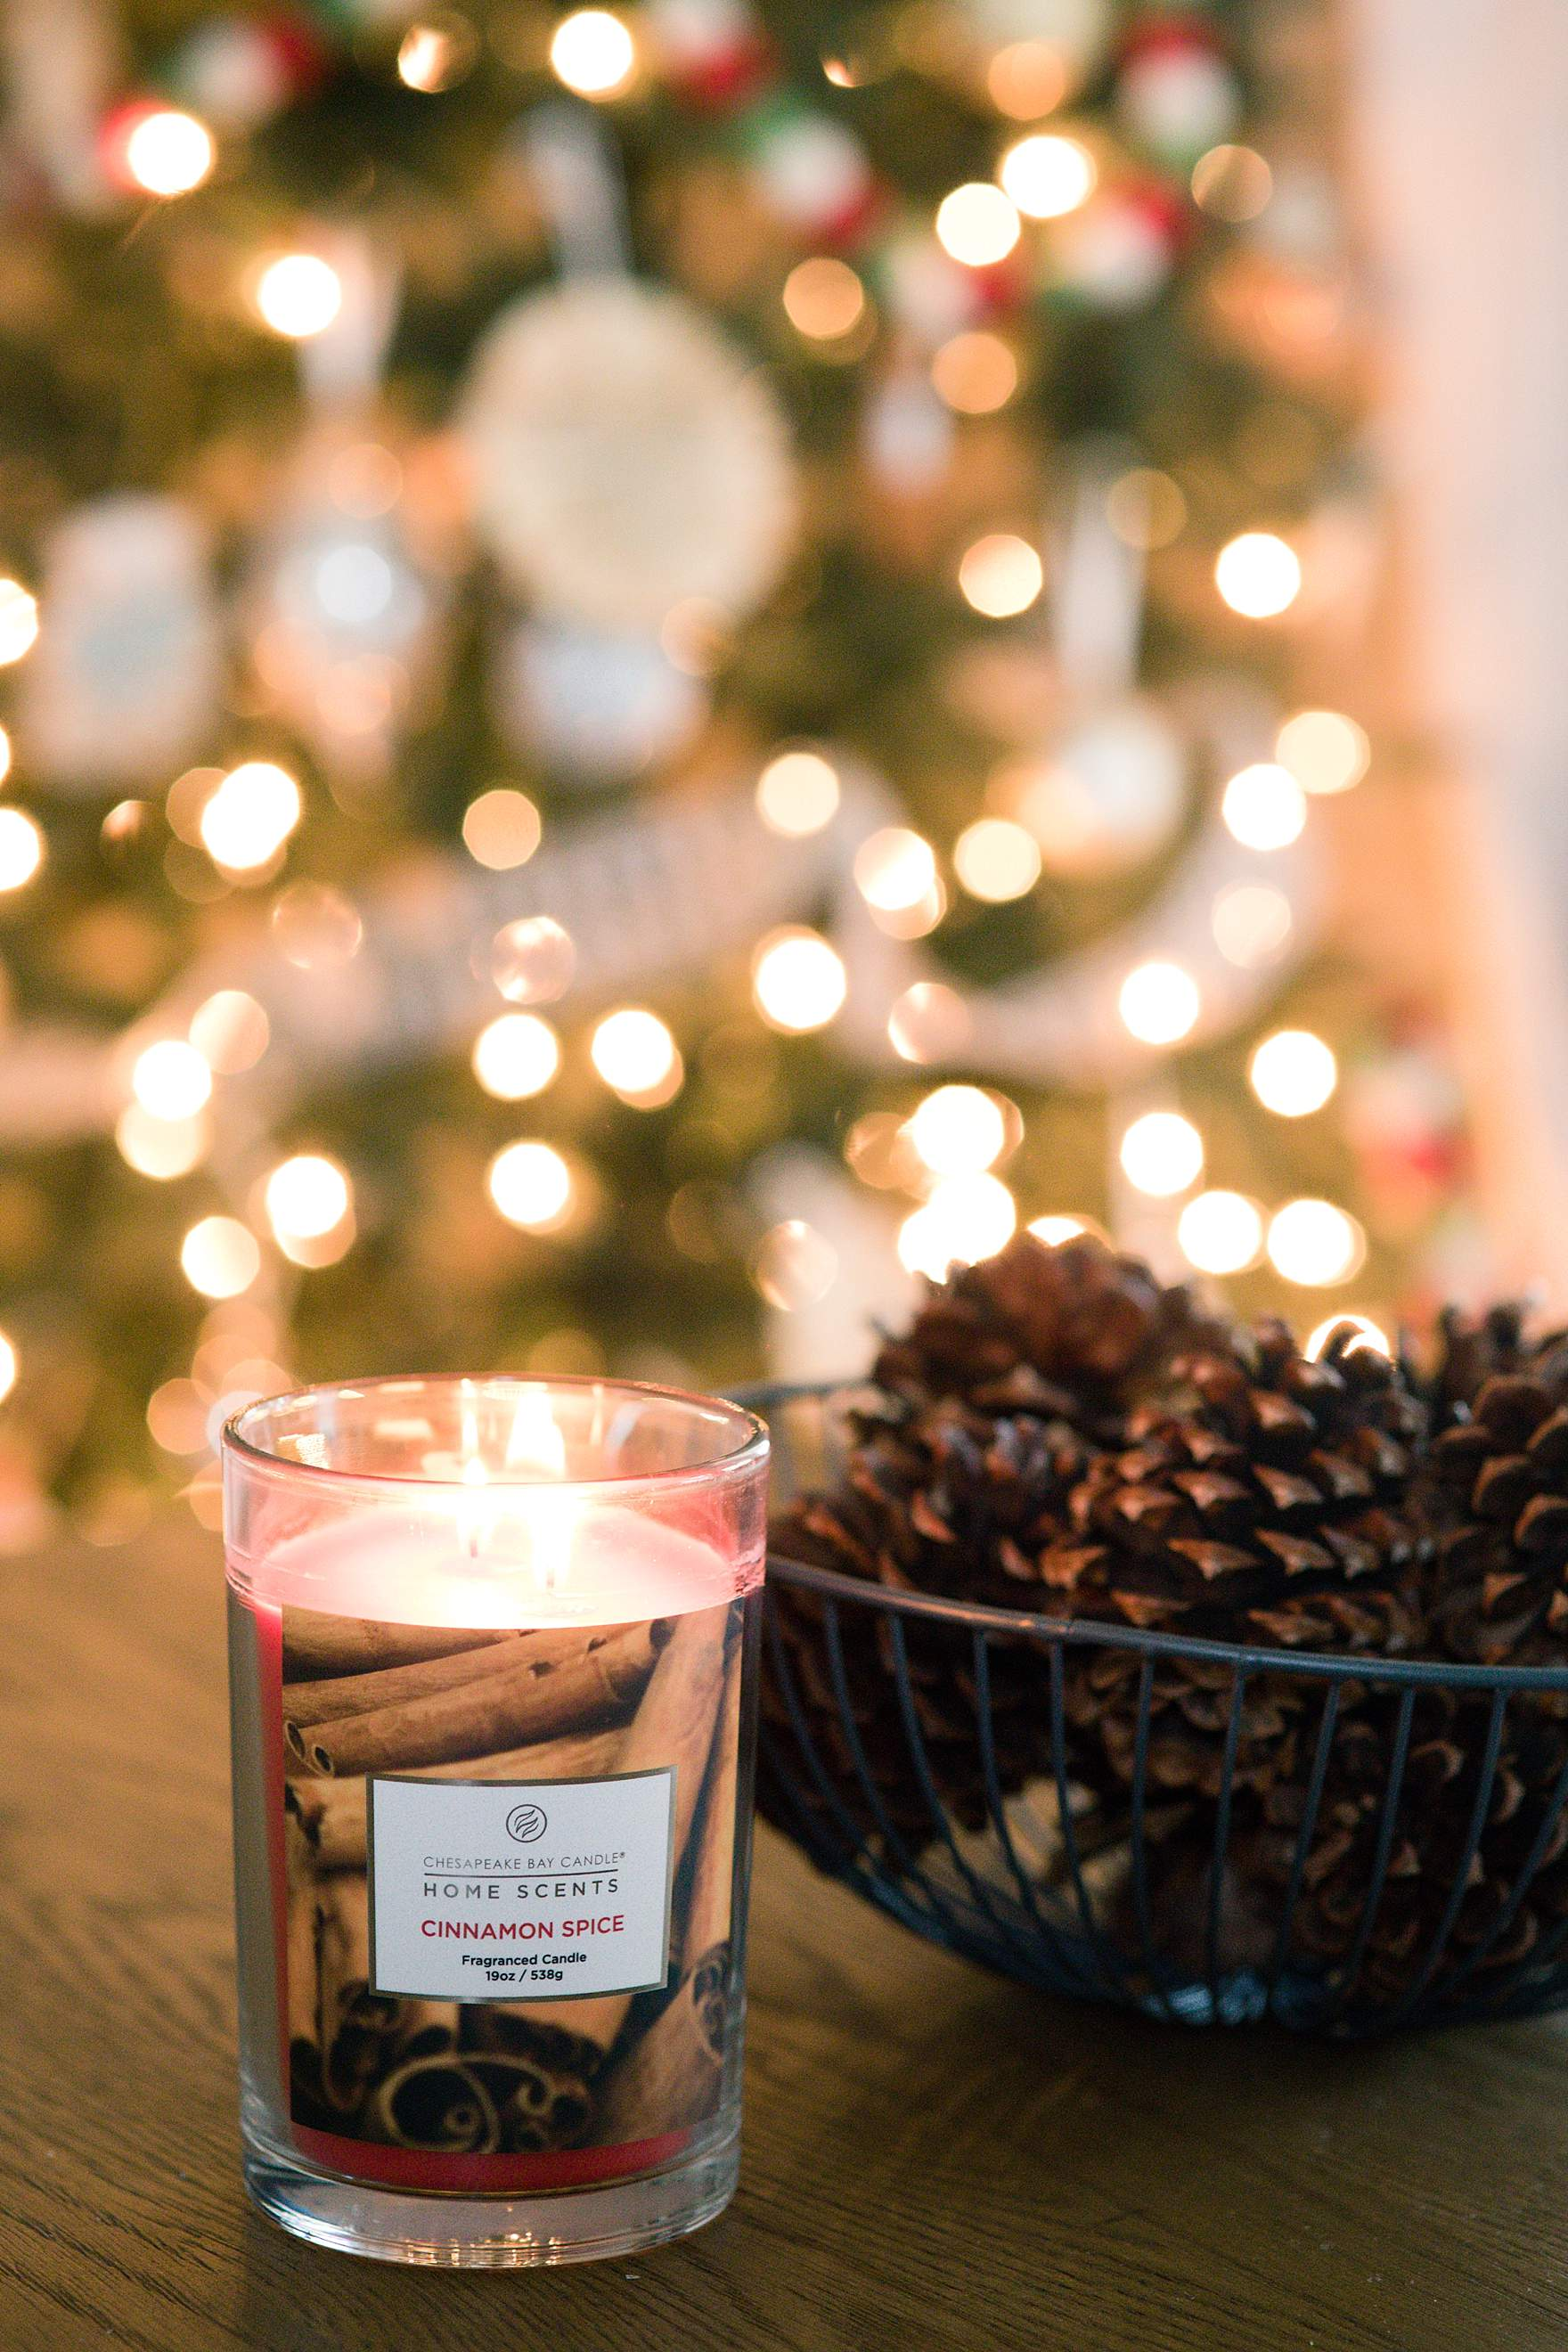 Chesapeake bay candles holiday winter scents $10 and burns for 80 hours